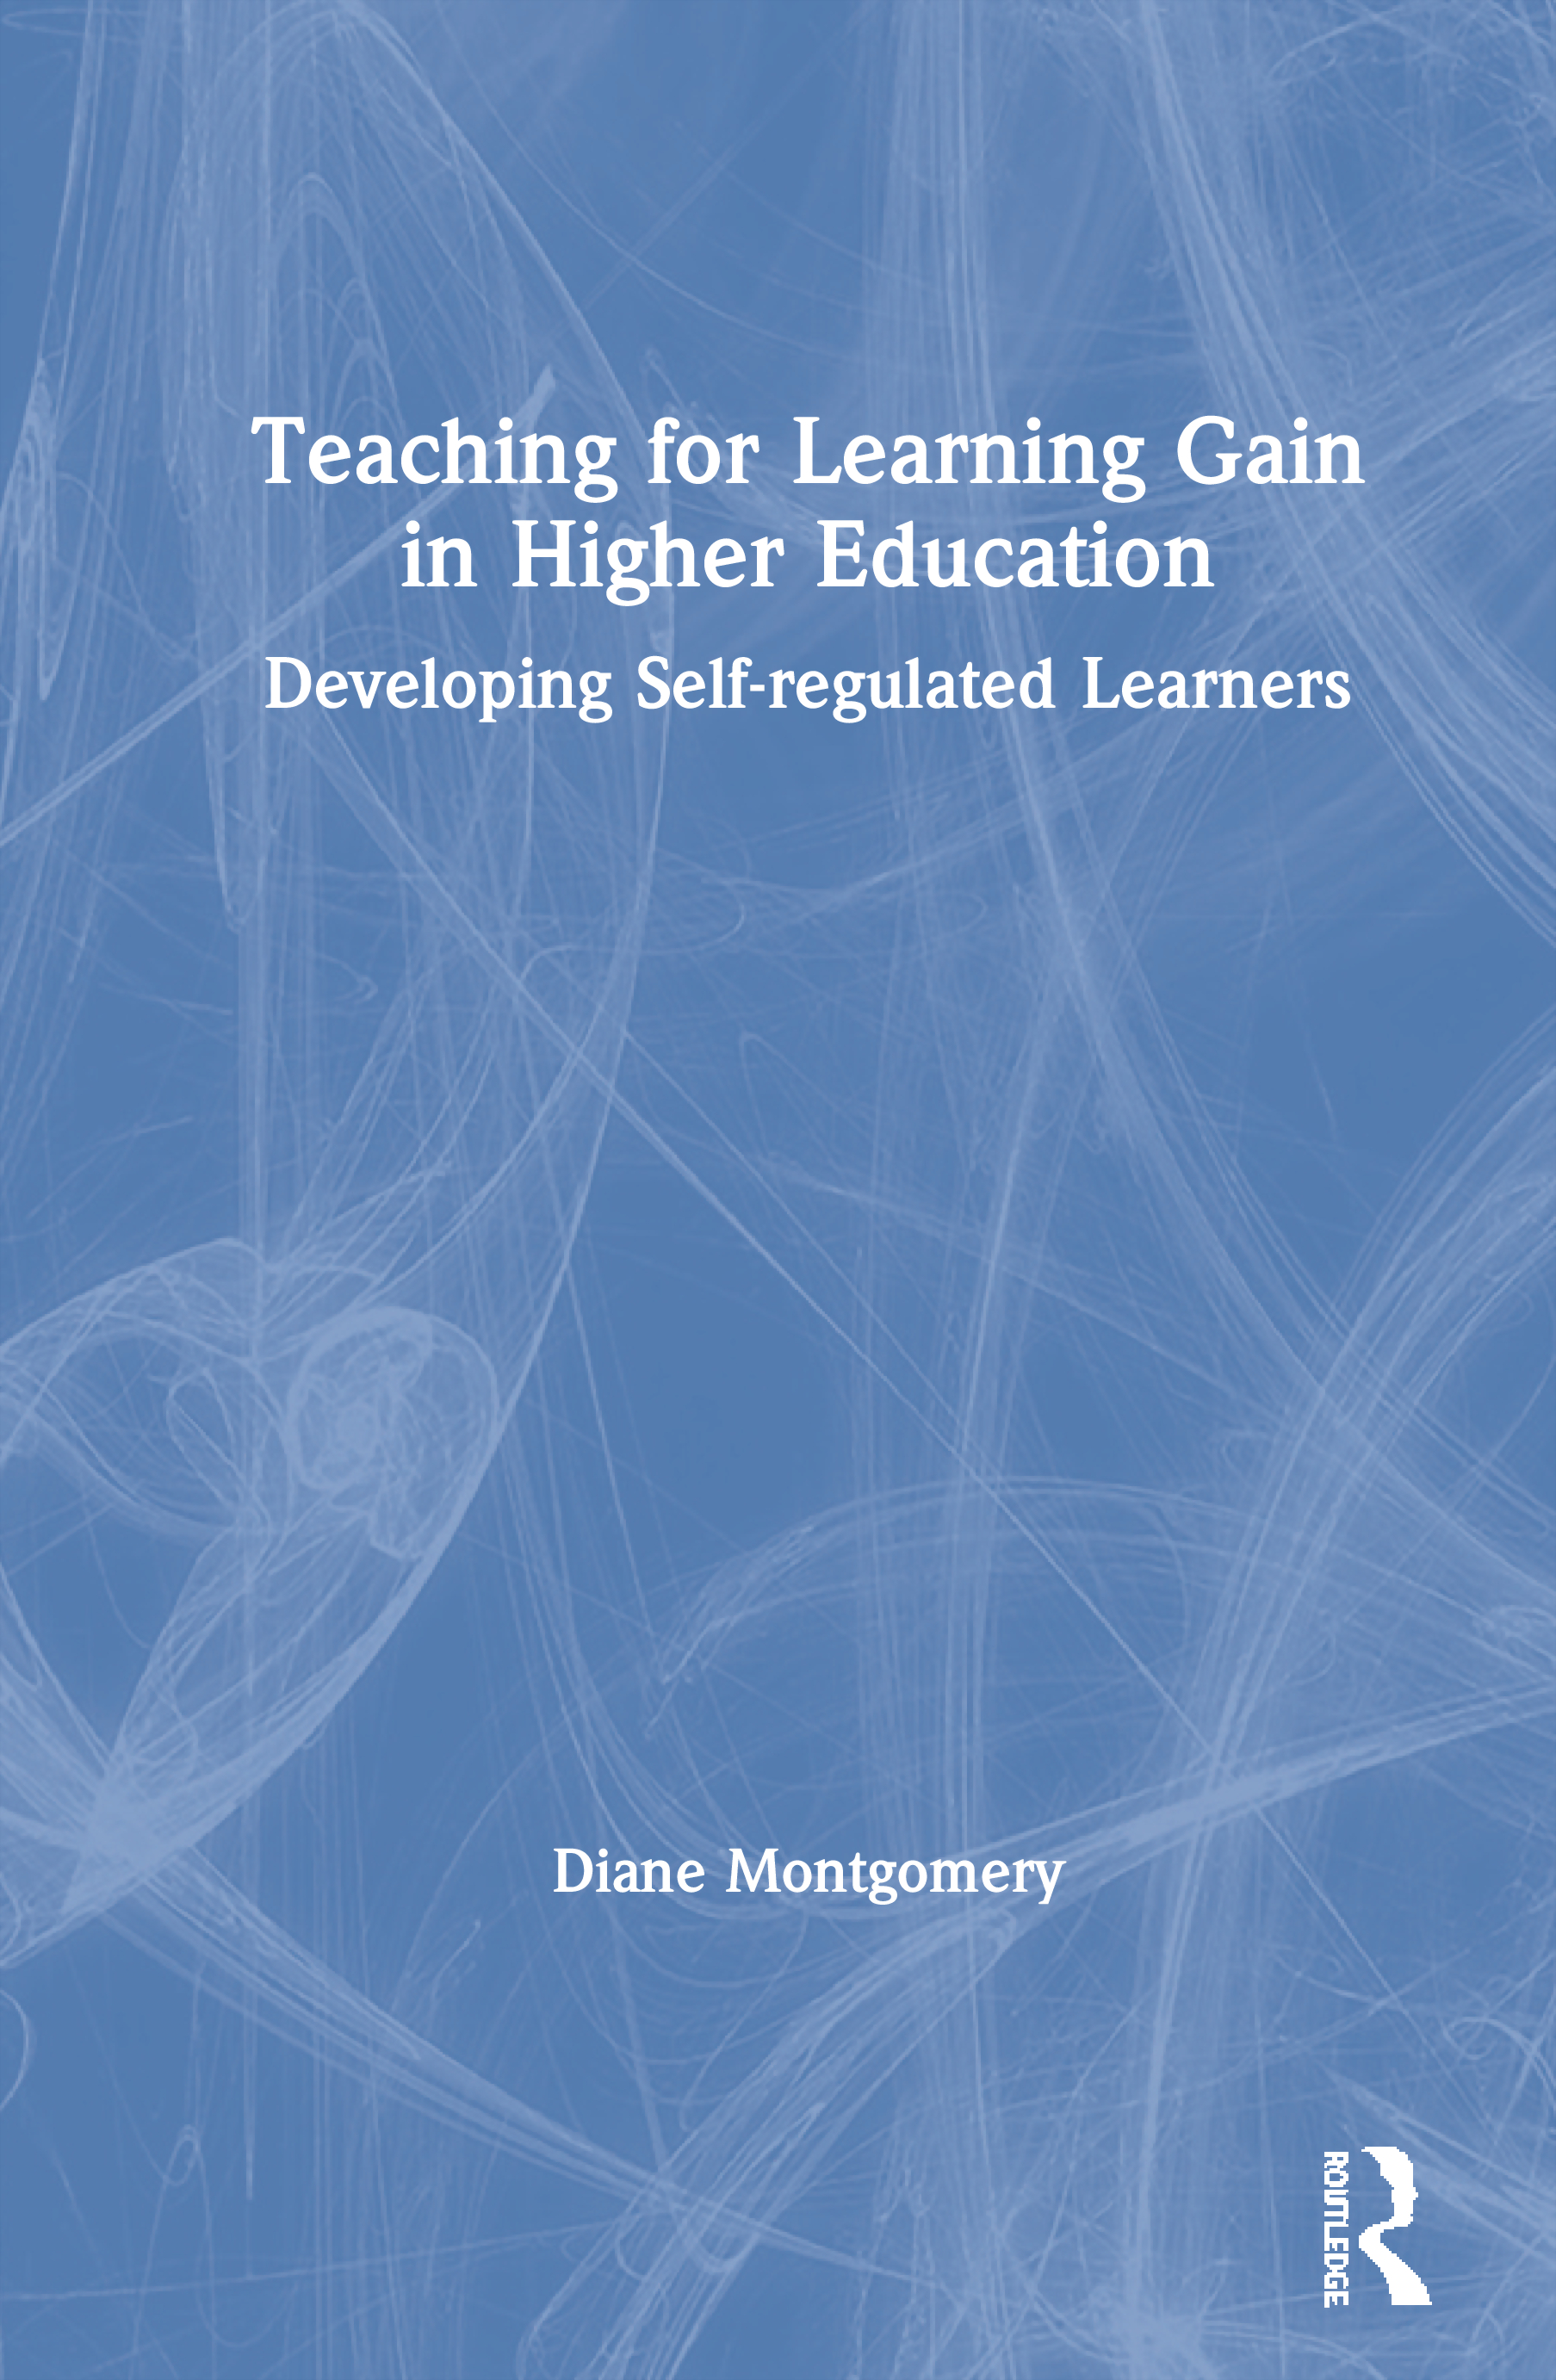 Teaching for Learning Gain in Higher Education: Developing Self-regulated Learners, 1st Edition (Paperback) book cover